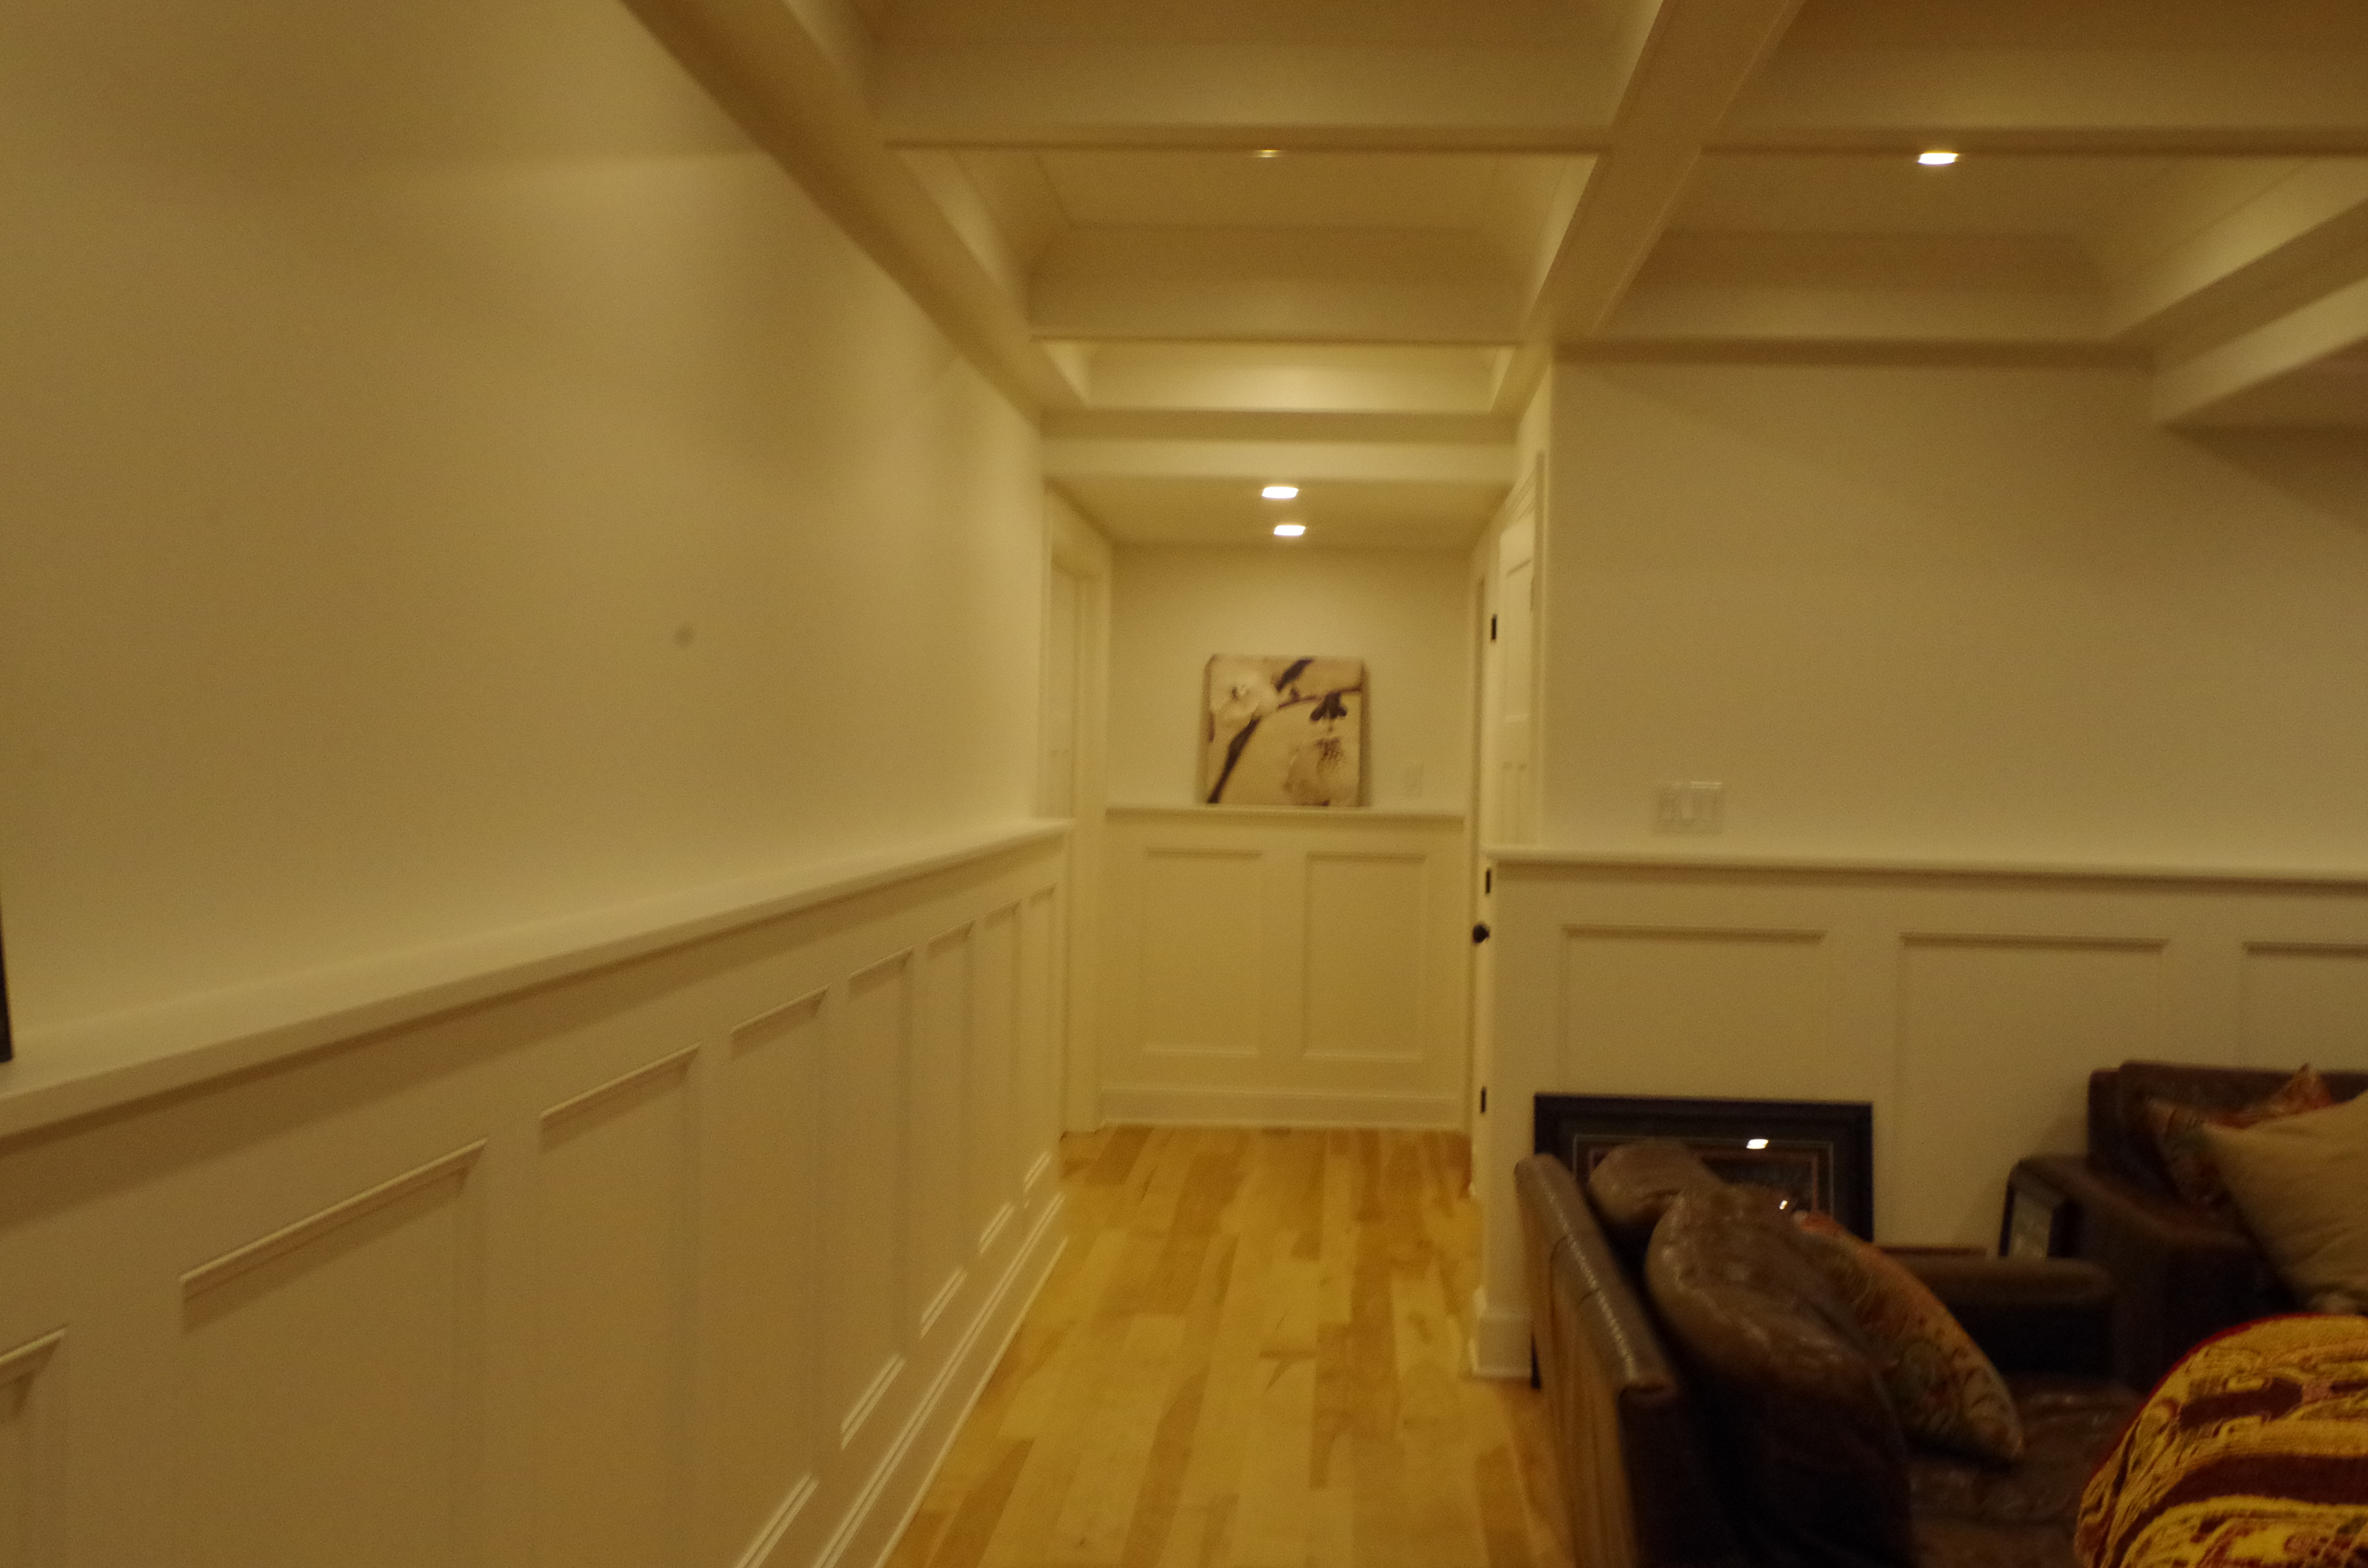 Hall paneled walls